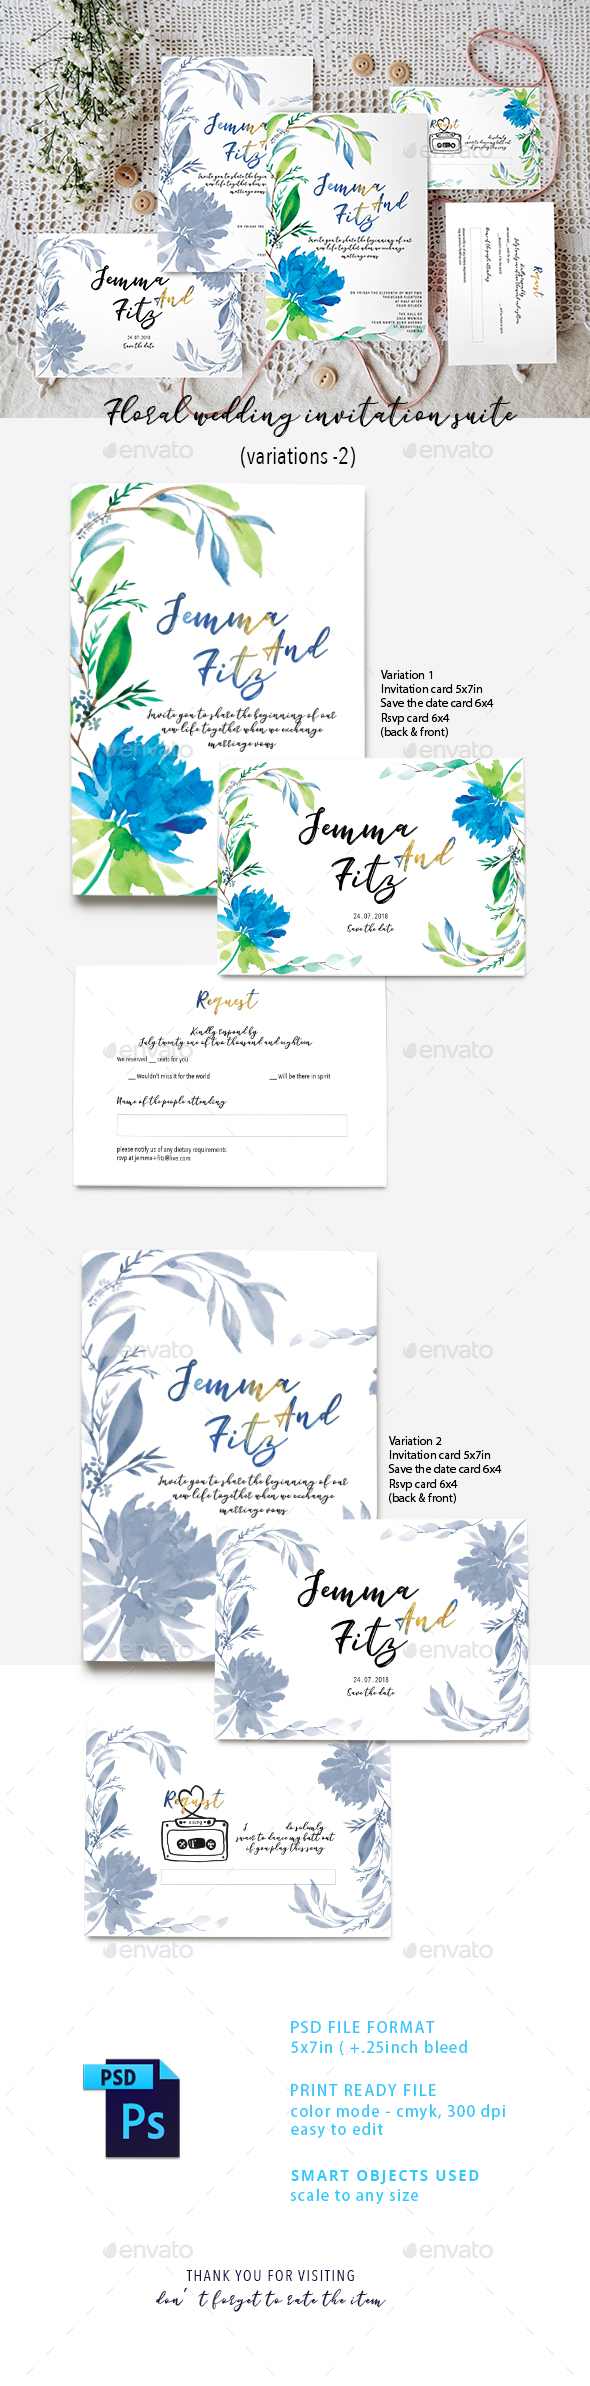 Floral Wedding Invitation Suite - Weddings Cards & Invites